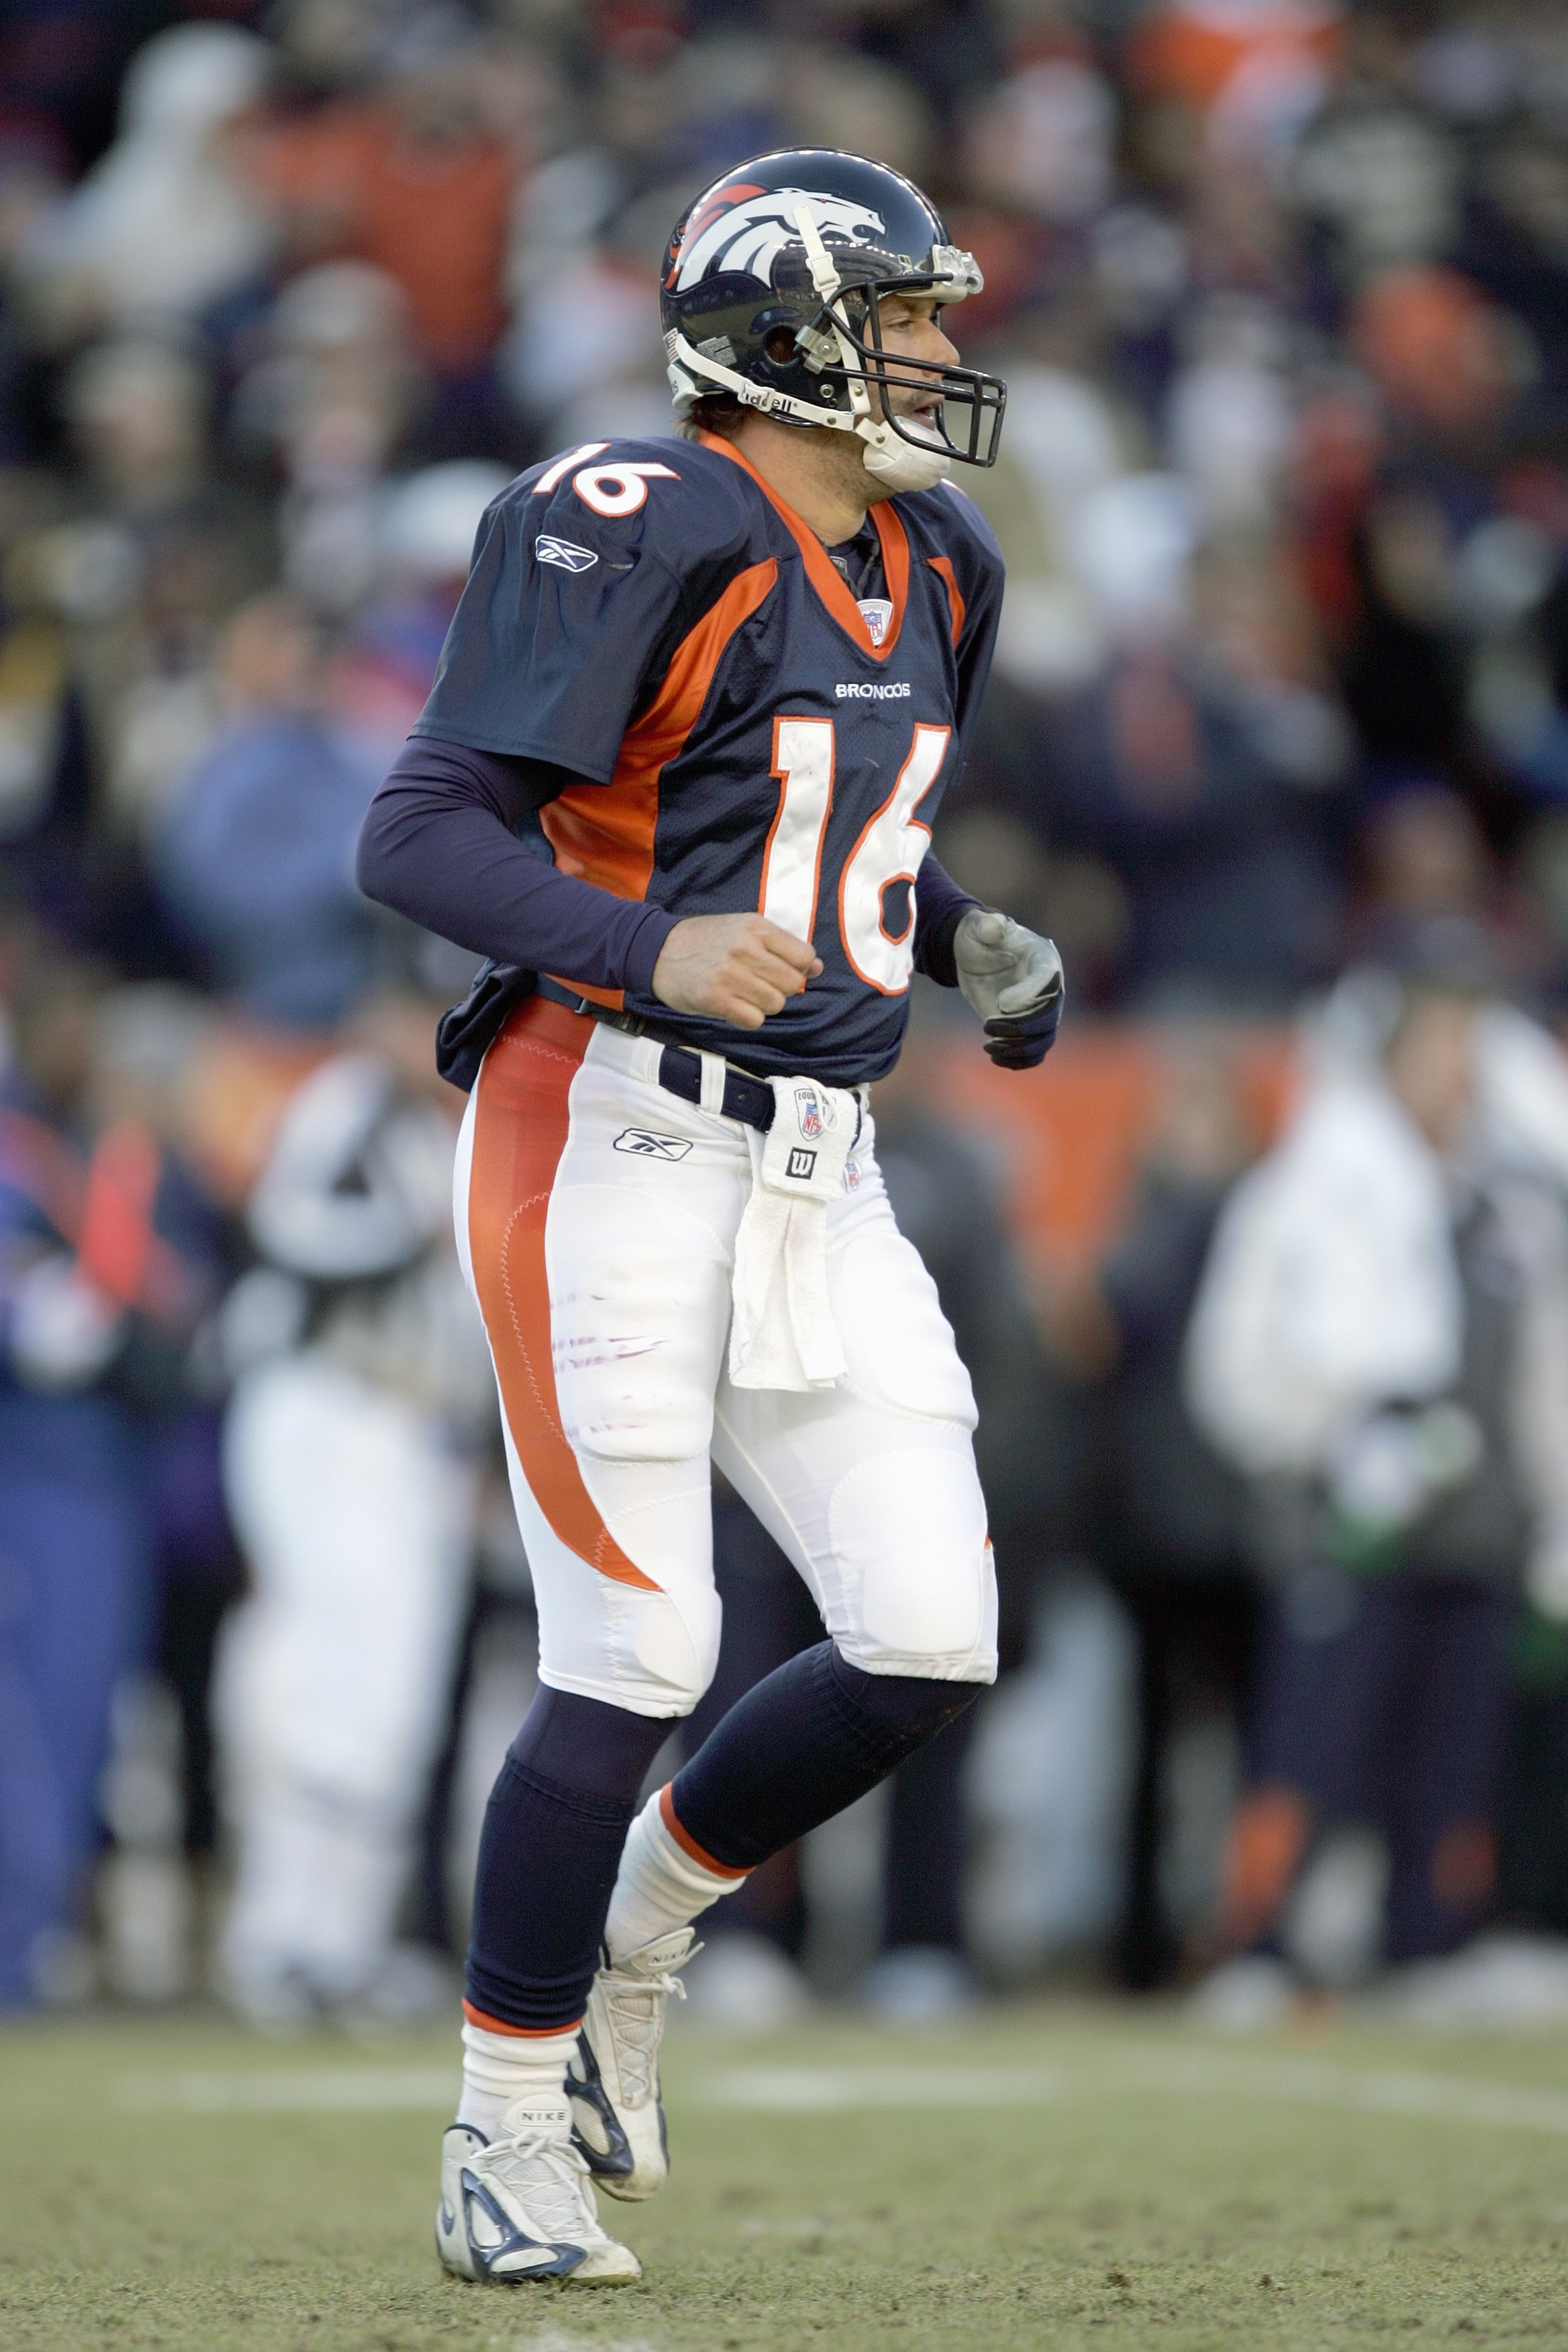 DENVER - DECEMBER 31: Jake Plummer #16 of the Denver Broncos moves on the field during the game against the San Francisco 49ers at Invesco Field at Mile High on December 31, 2006 in Denver, Colorado. The 49ers won 26-23, eliminating the Broncos from the p